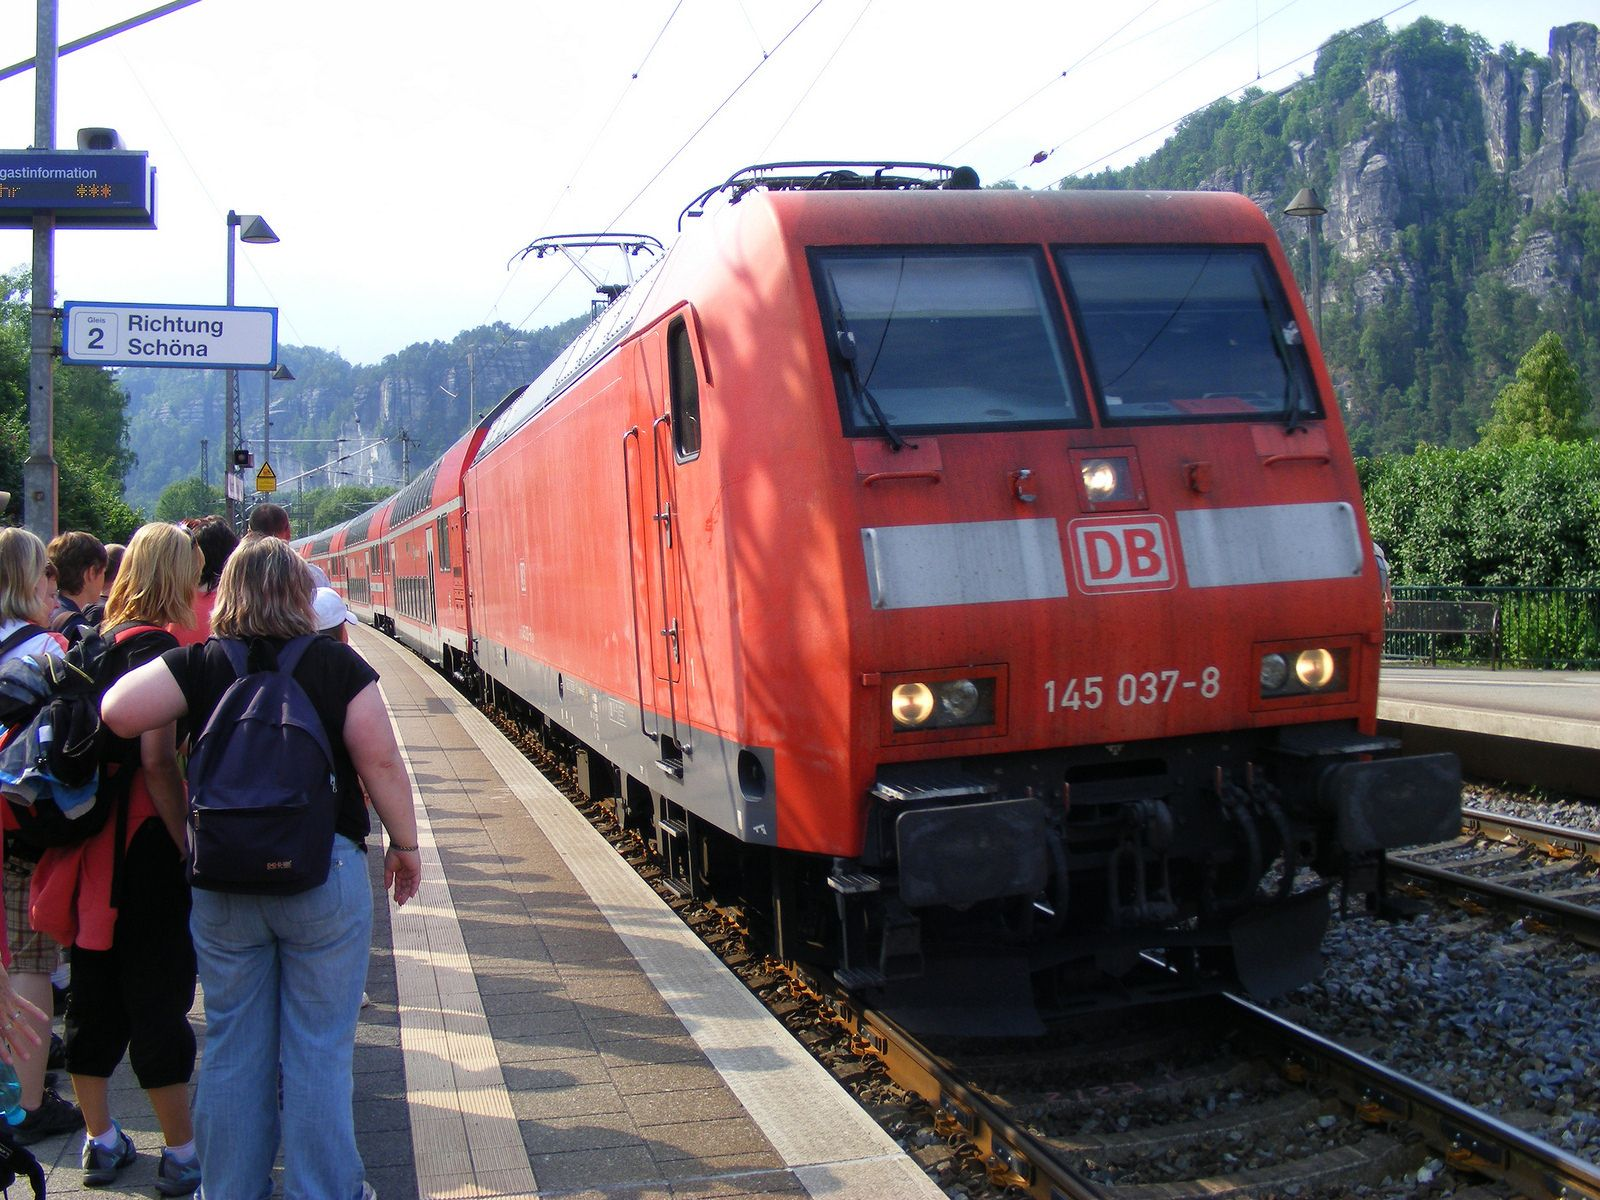 ICYMI Germany Is Planning Free Public Transit to Fight